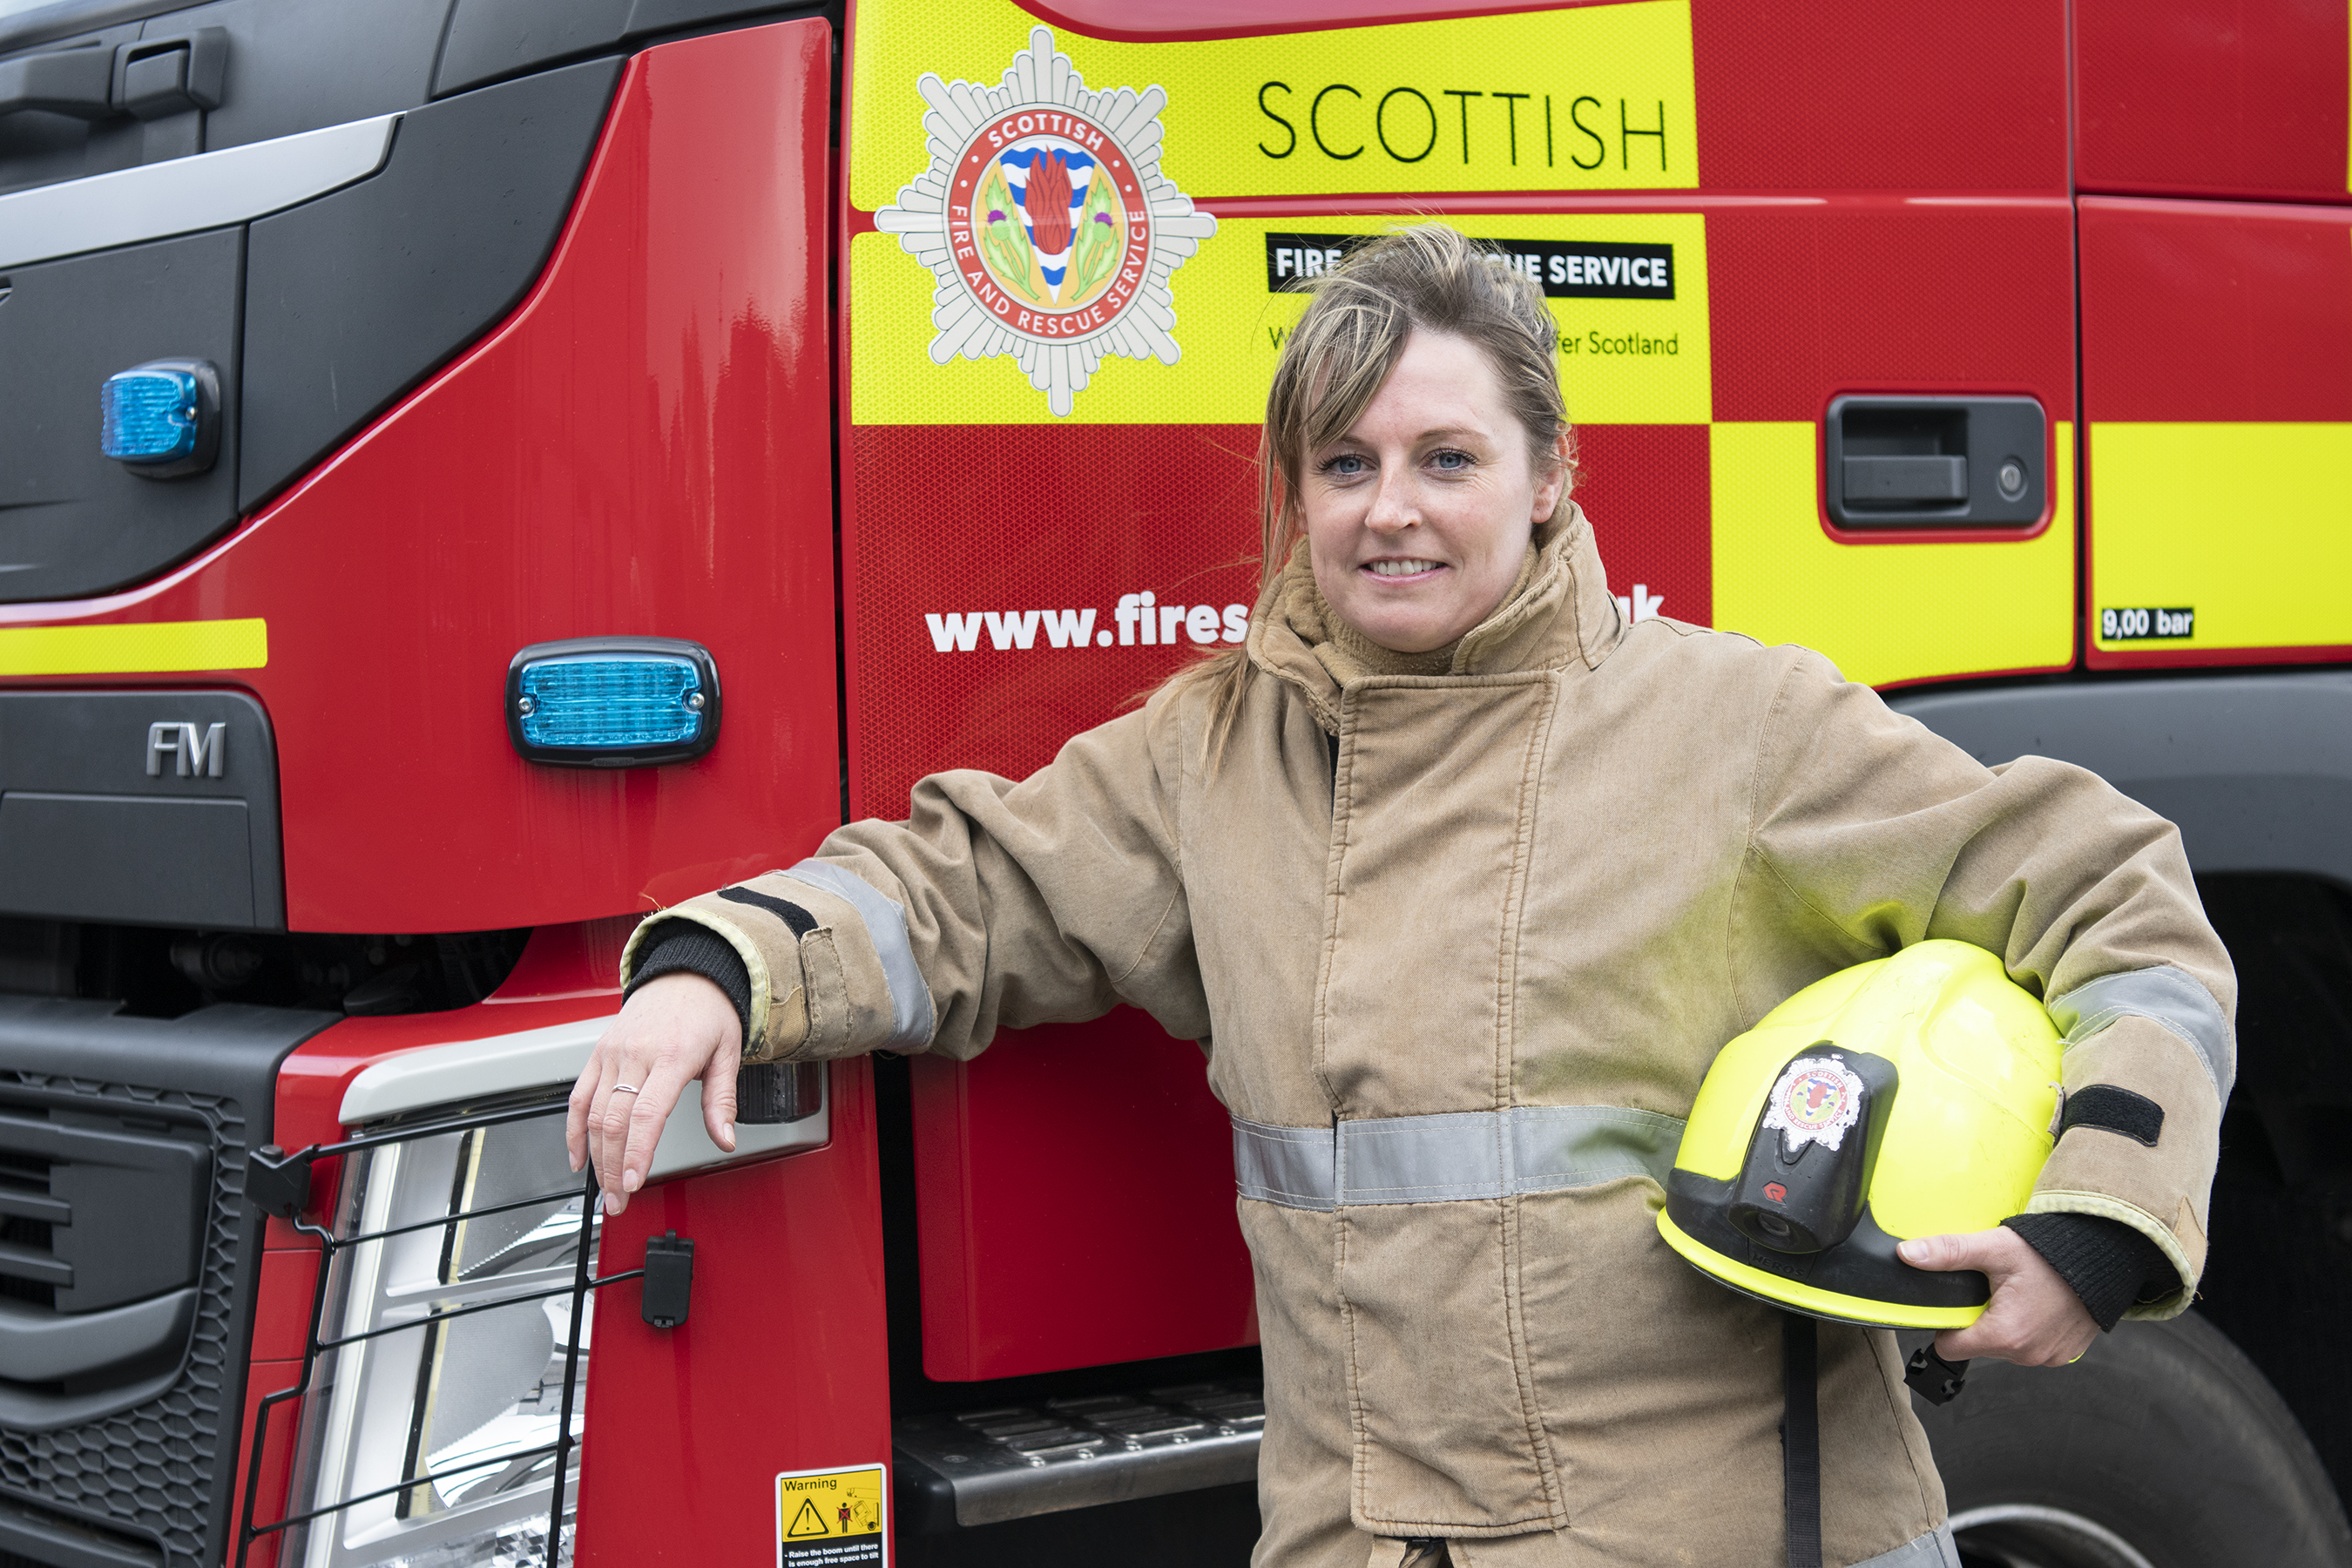 Nicolle Beattie joined the fire service in 2012.